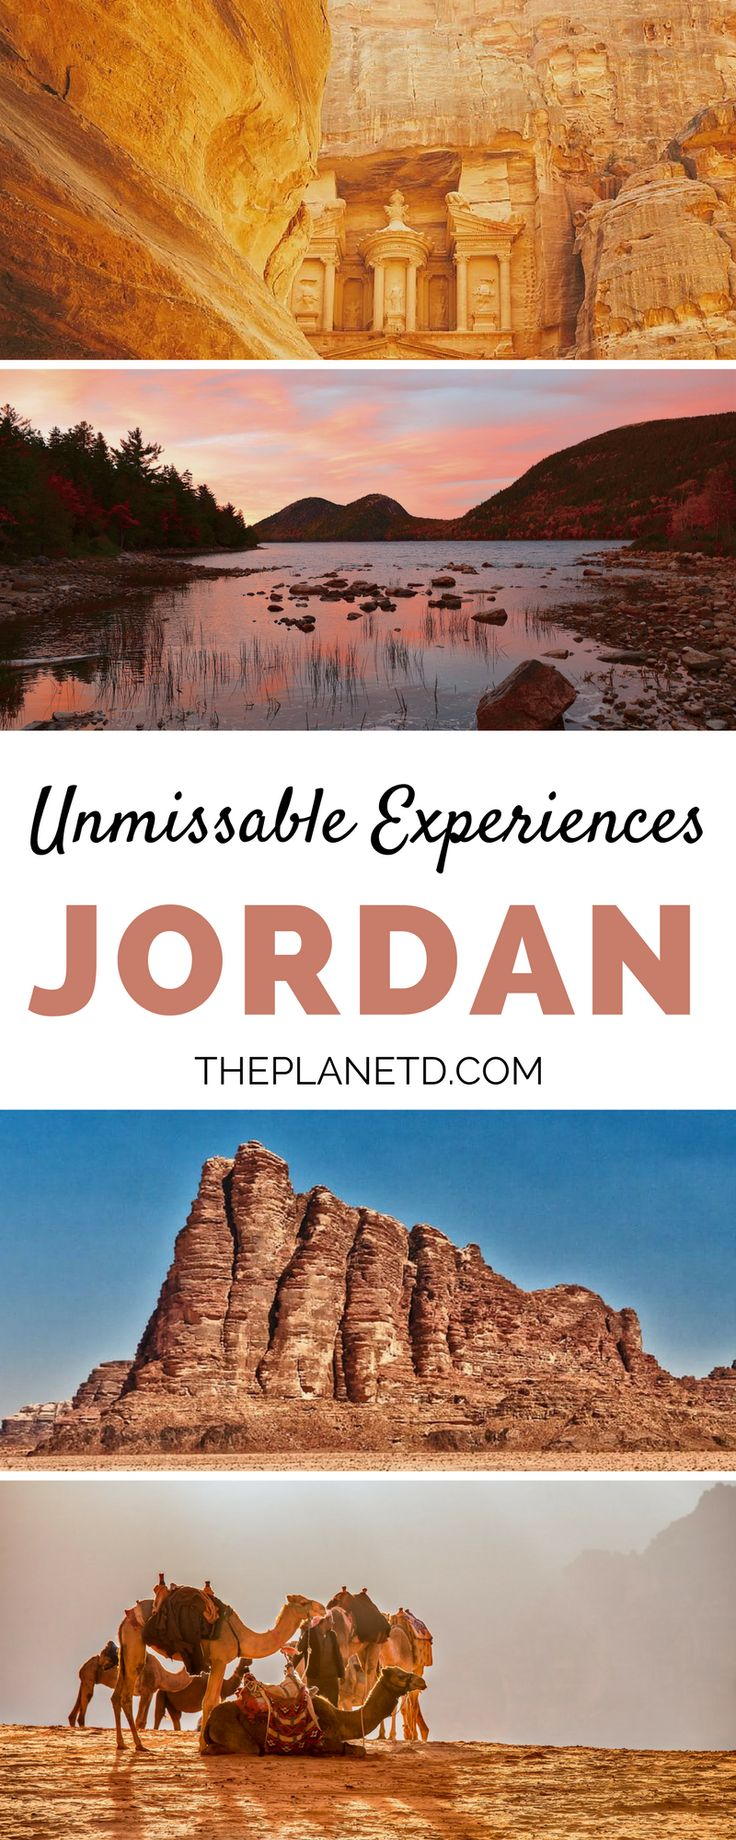 Our top 10 things to do in Jordan that will make you want to pack your travel bags right now. From the awe-inspiring Petra to the metropolis of Amman to the deserts of Wadi Rum, this guide includes experiences that you won't want to miss when visiting this tranquil gem of the Middle East + practical tips for your trip. | Blog by the Planet D #Jordan #MiddleEast